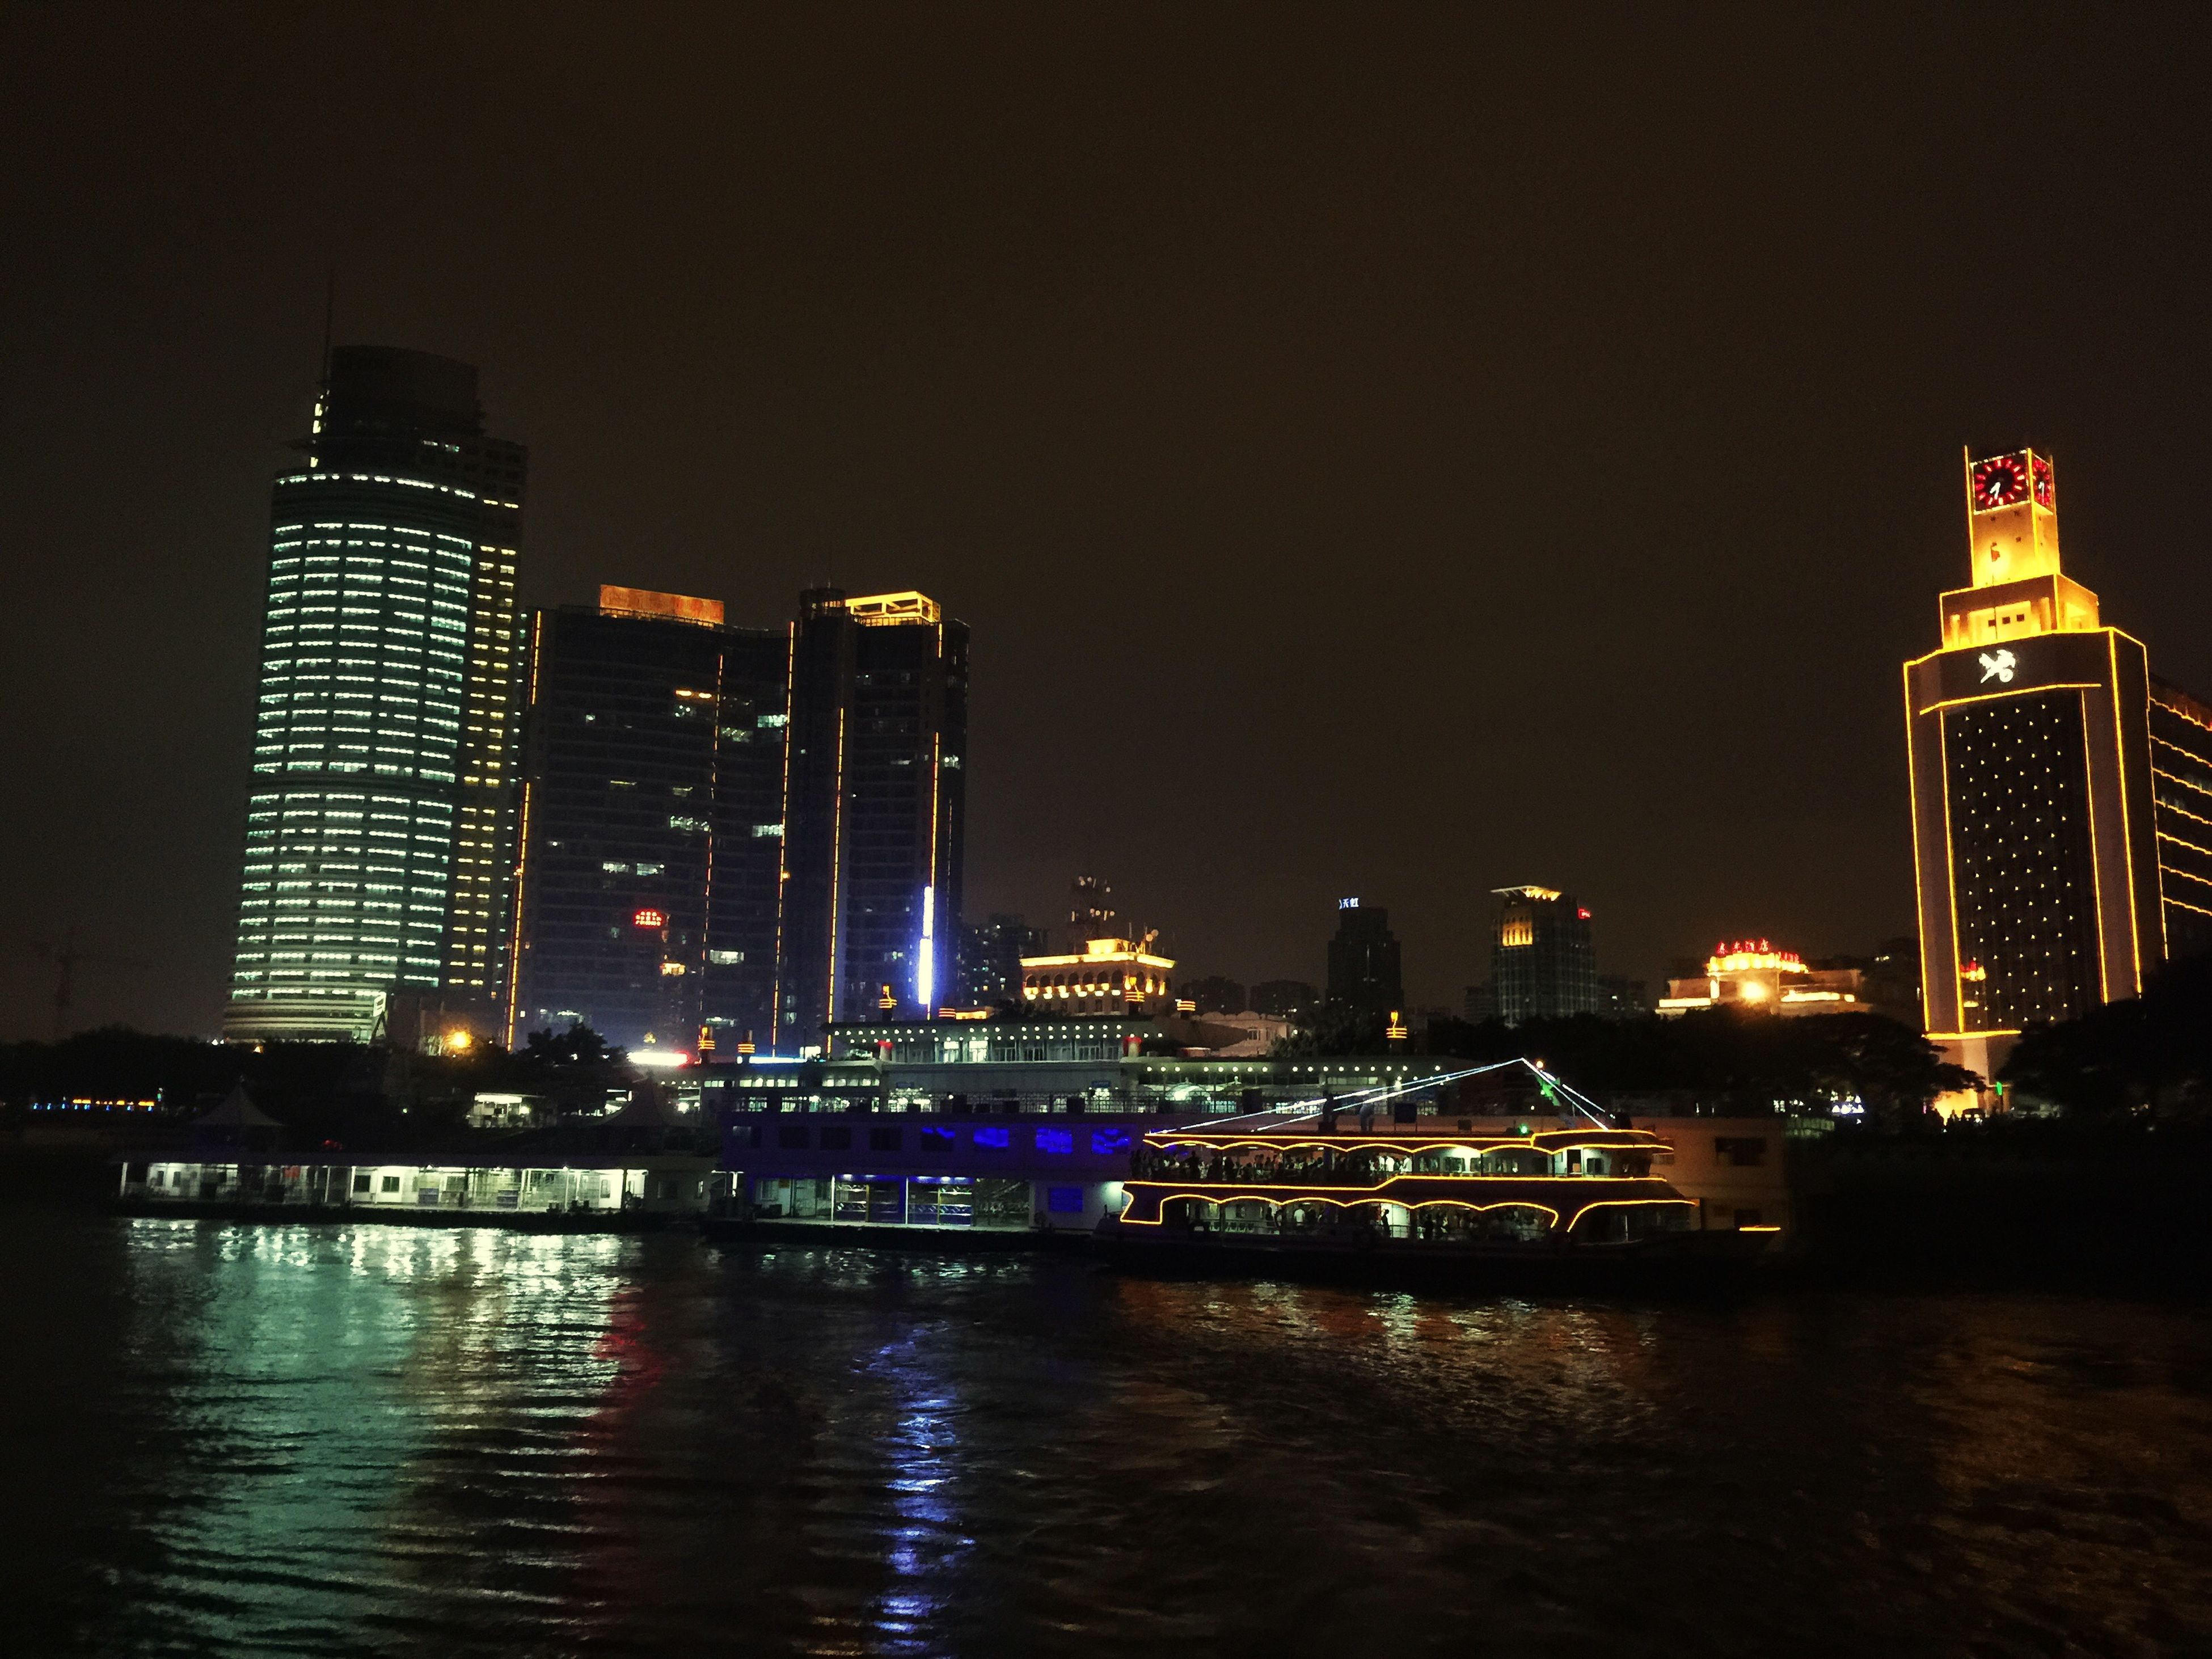 illuminated, building exterior, night, architecture, city, built structure, skyscraper, tower, waterfront, tall - high, modern, cityscape, office building, urban skyline, water, clear sky, river, reflection, financial district, copy space